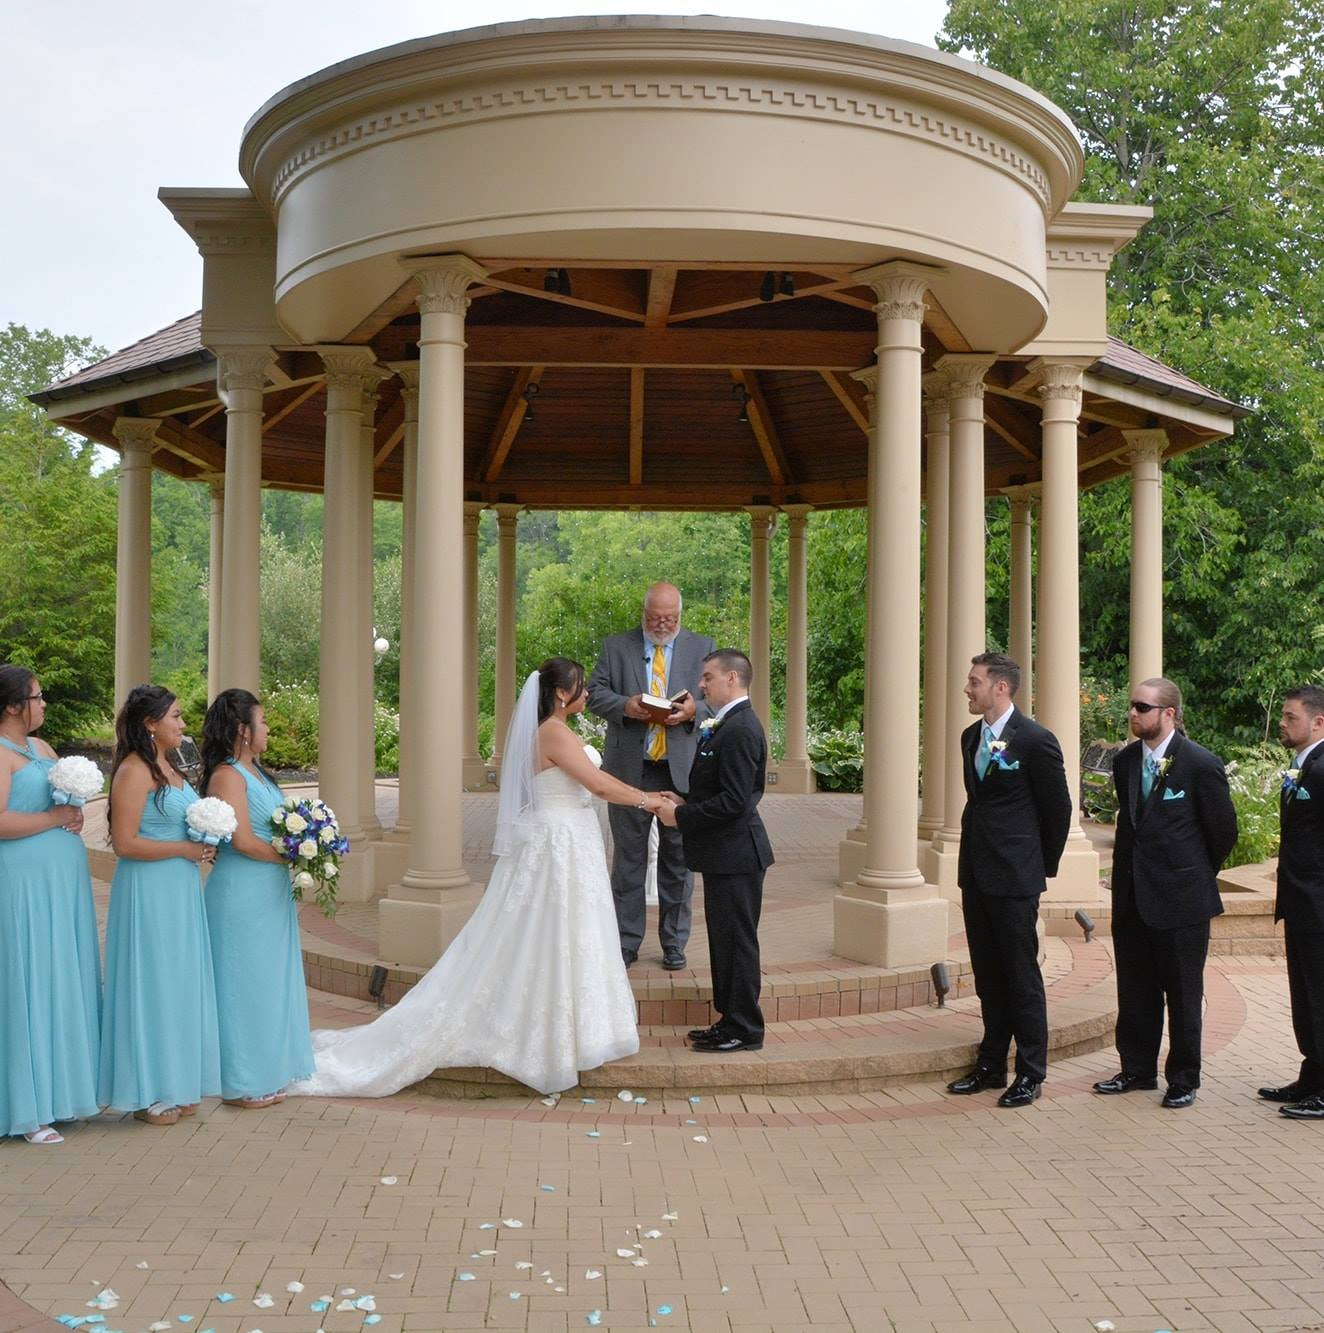 Outdoor Wedding Venues In Ohio: Caro's Party Center 2777 PEARL RD MEDINA, OH 44256